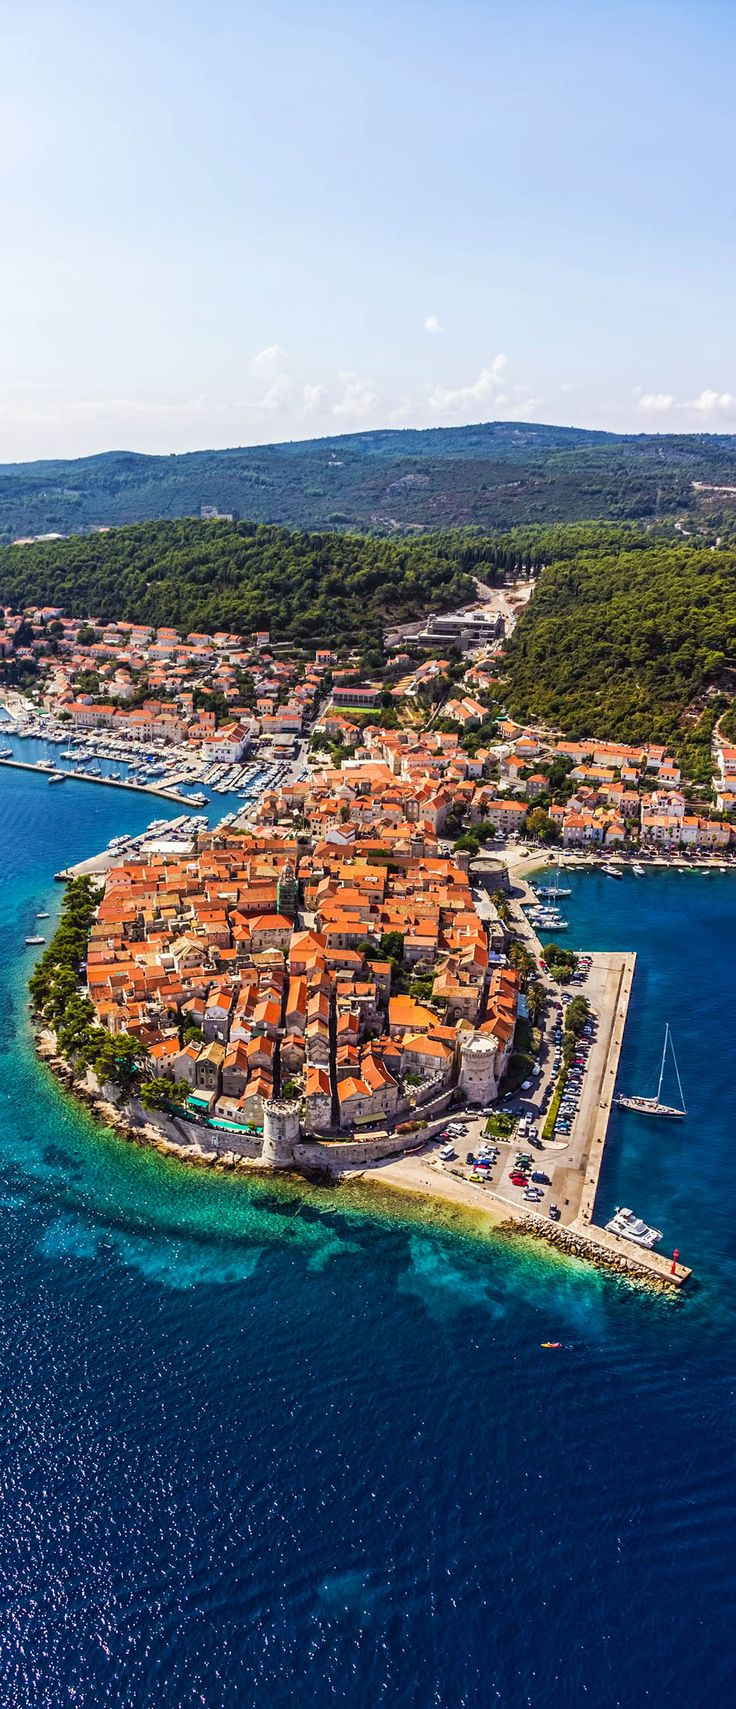 Amazing View of Korcula old town. Dubrovnik archipelago - Elaphites Islands. Dubrovnik is a Croatian city on the Adriatic Sea, in the region of Dalmatia. It is one of the most prominent tourist destinations in the Mediterranean Sea, a seaport and the center of Dubrovnik-Neretva County.